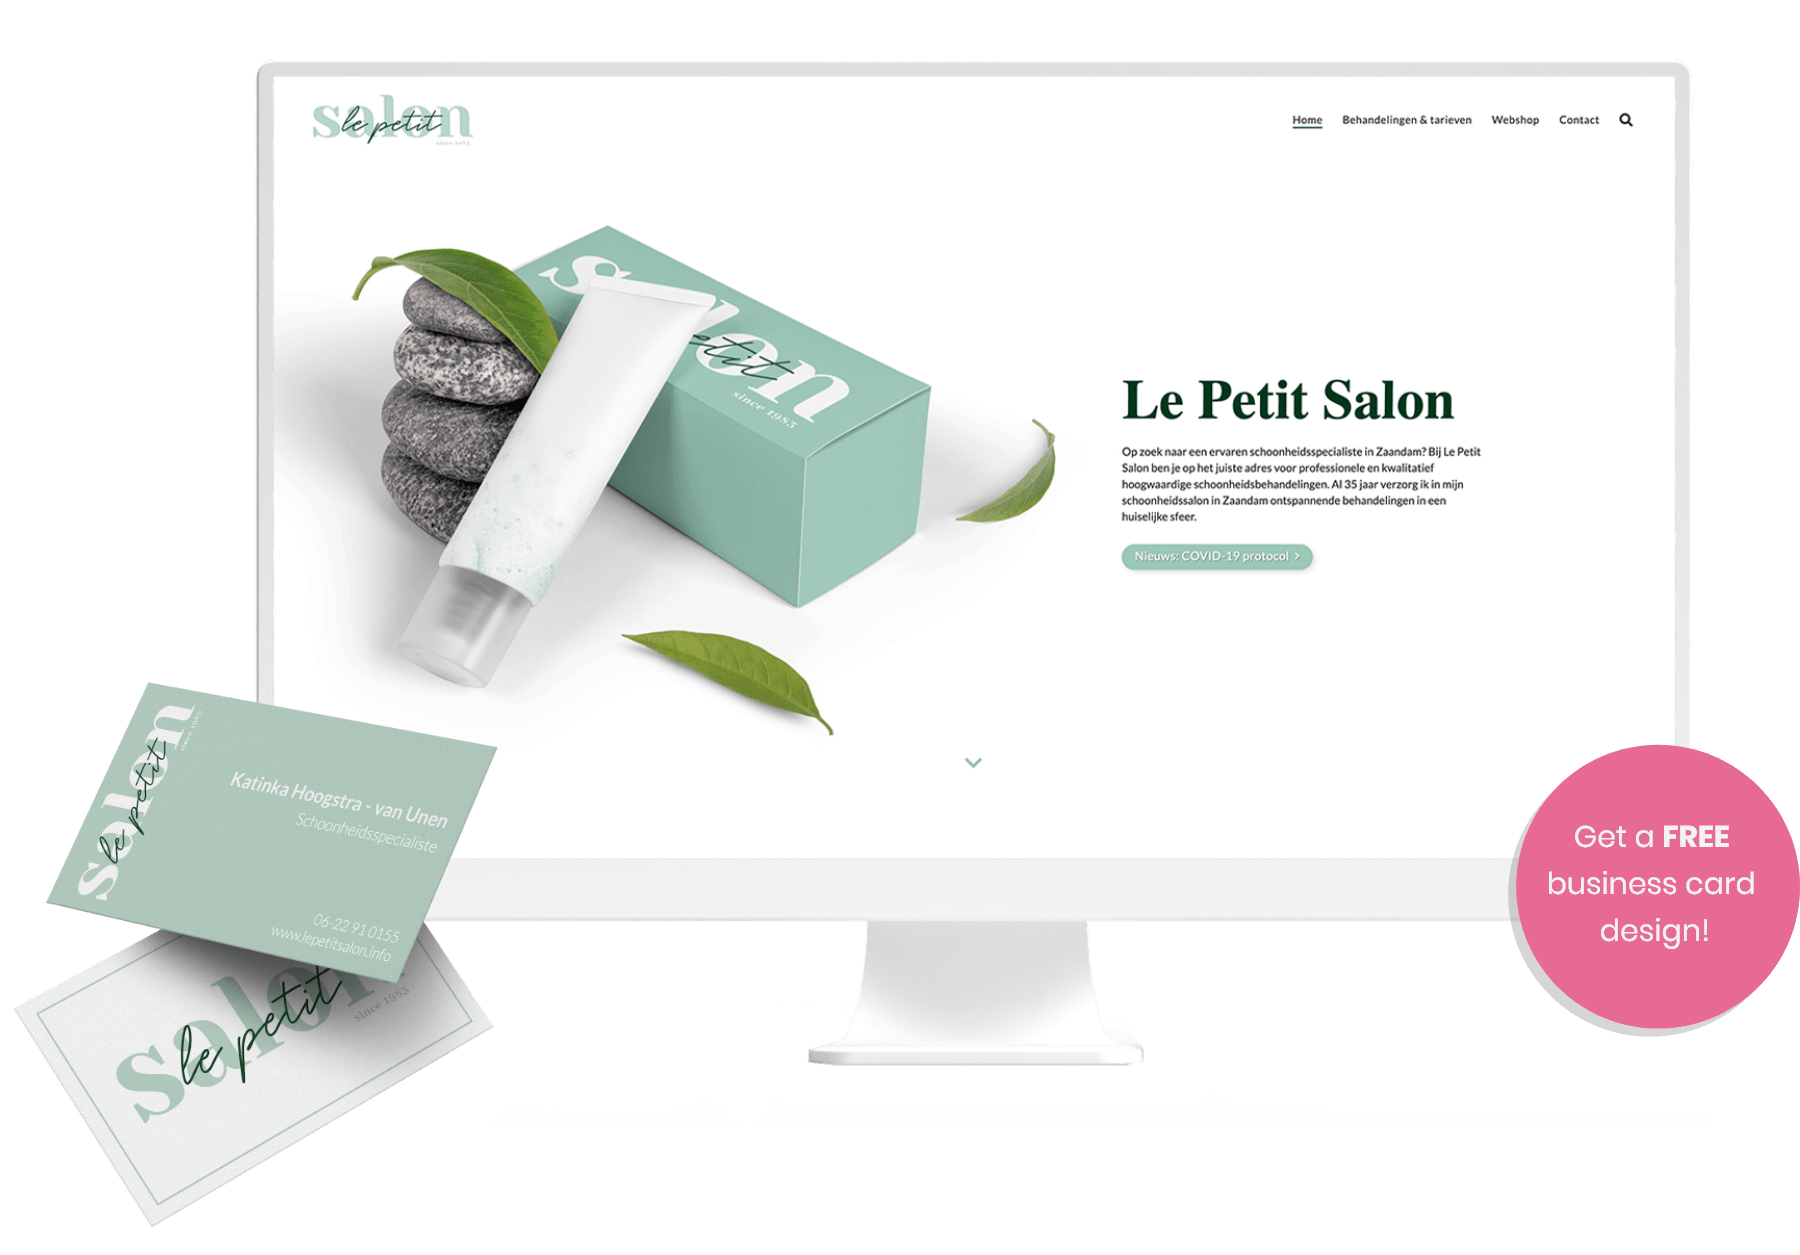 Get a free business card design when you get a website from Pura-web